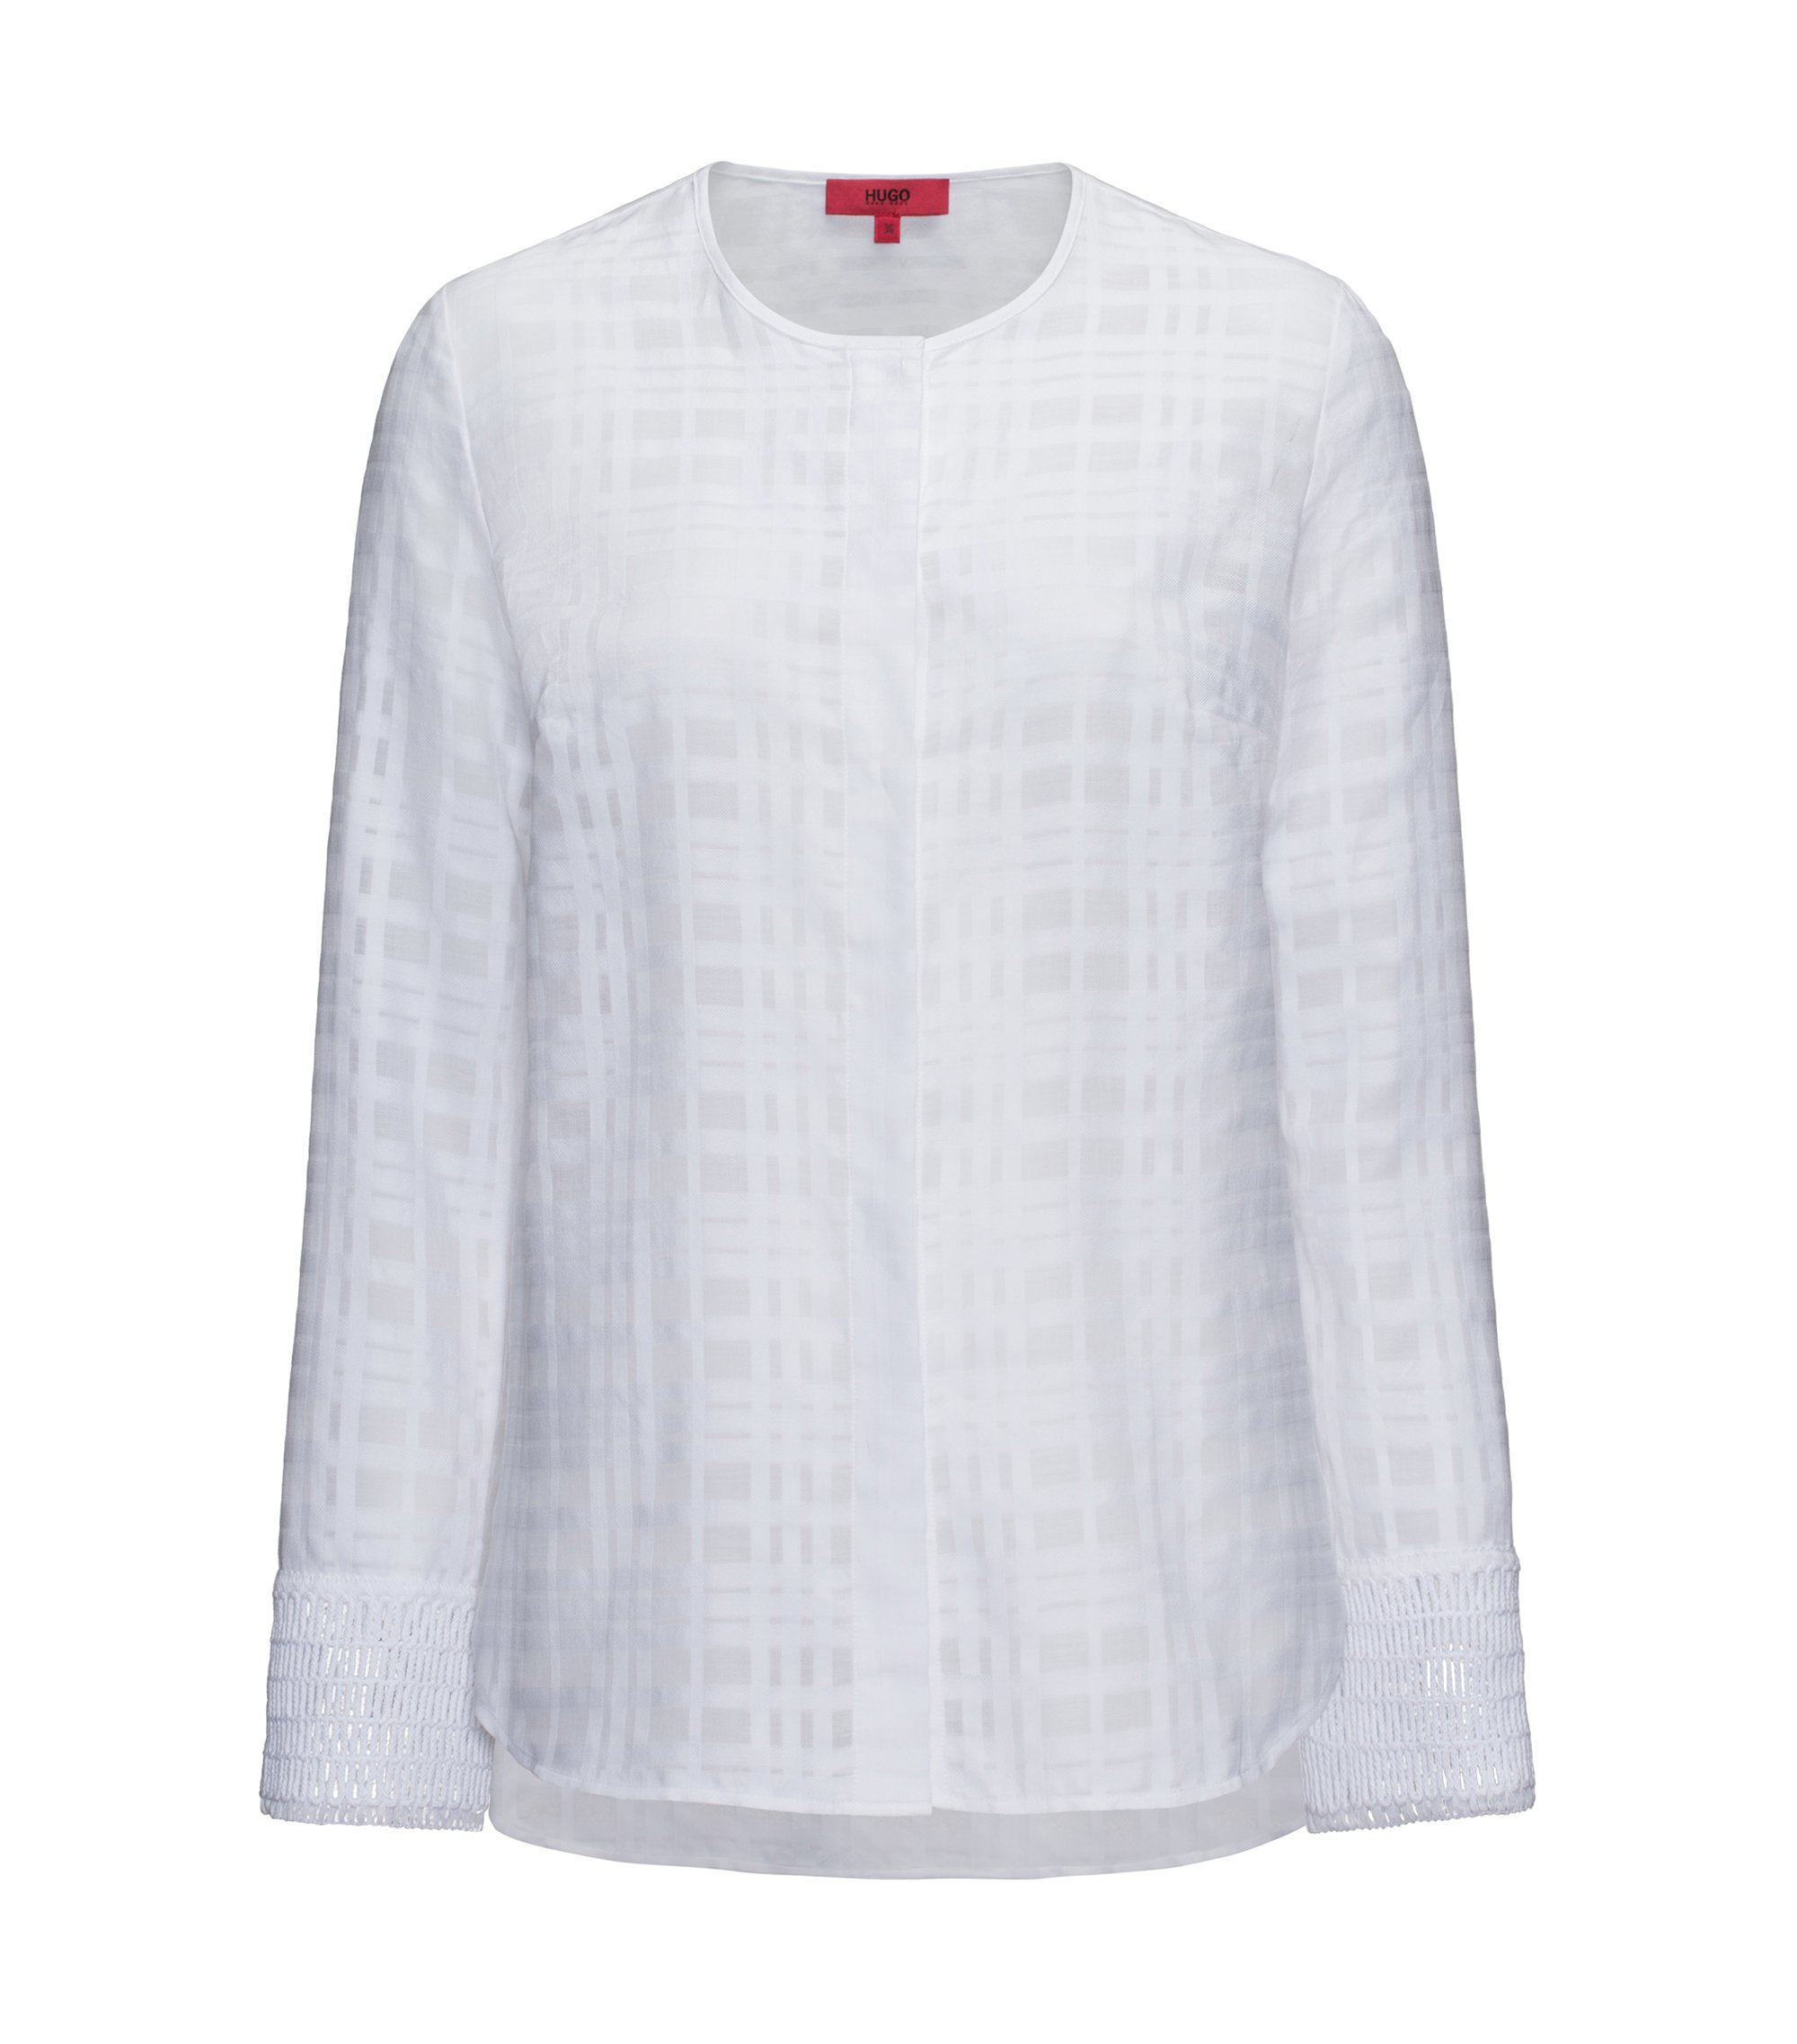 Collarless cotton blouse with macramé cuff detailing, White